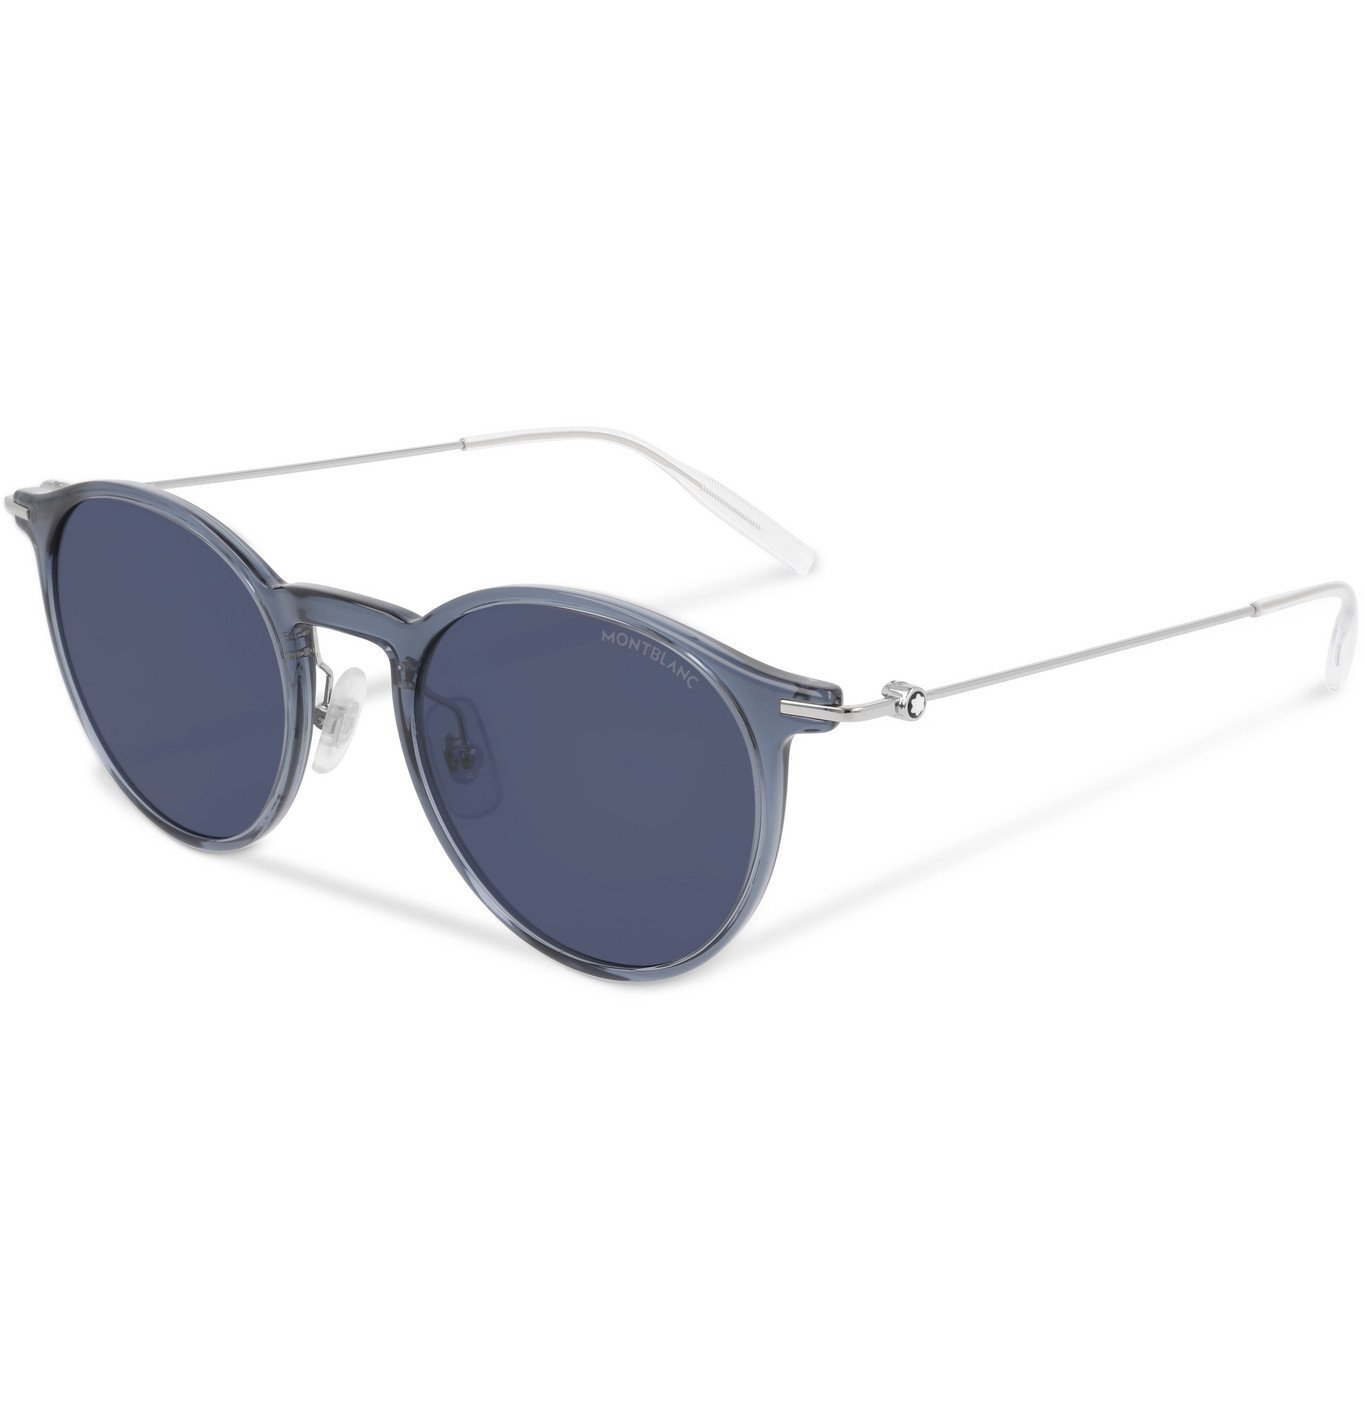 Montblanc - Round-Frame Silver-Tone and Acetate Sunglasses - Unknown